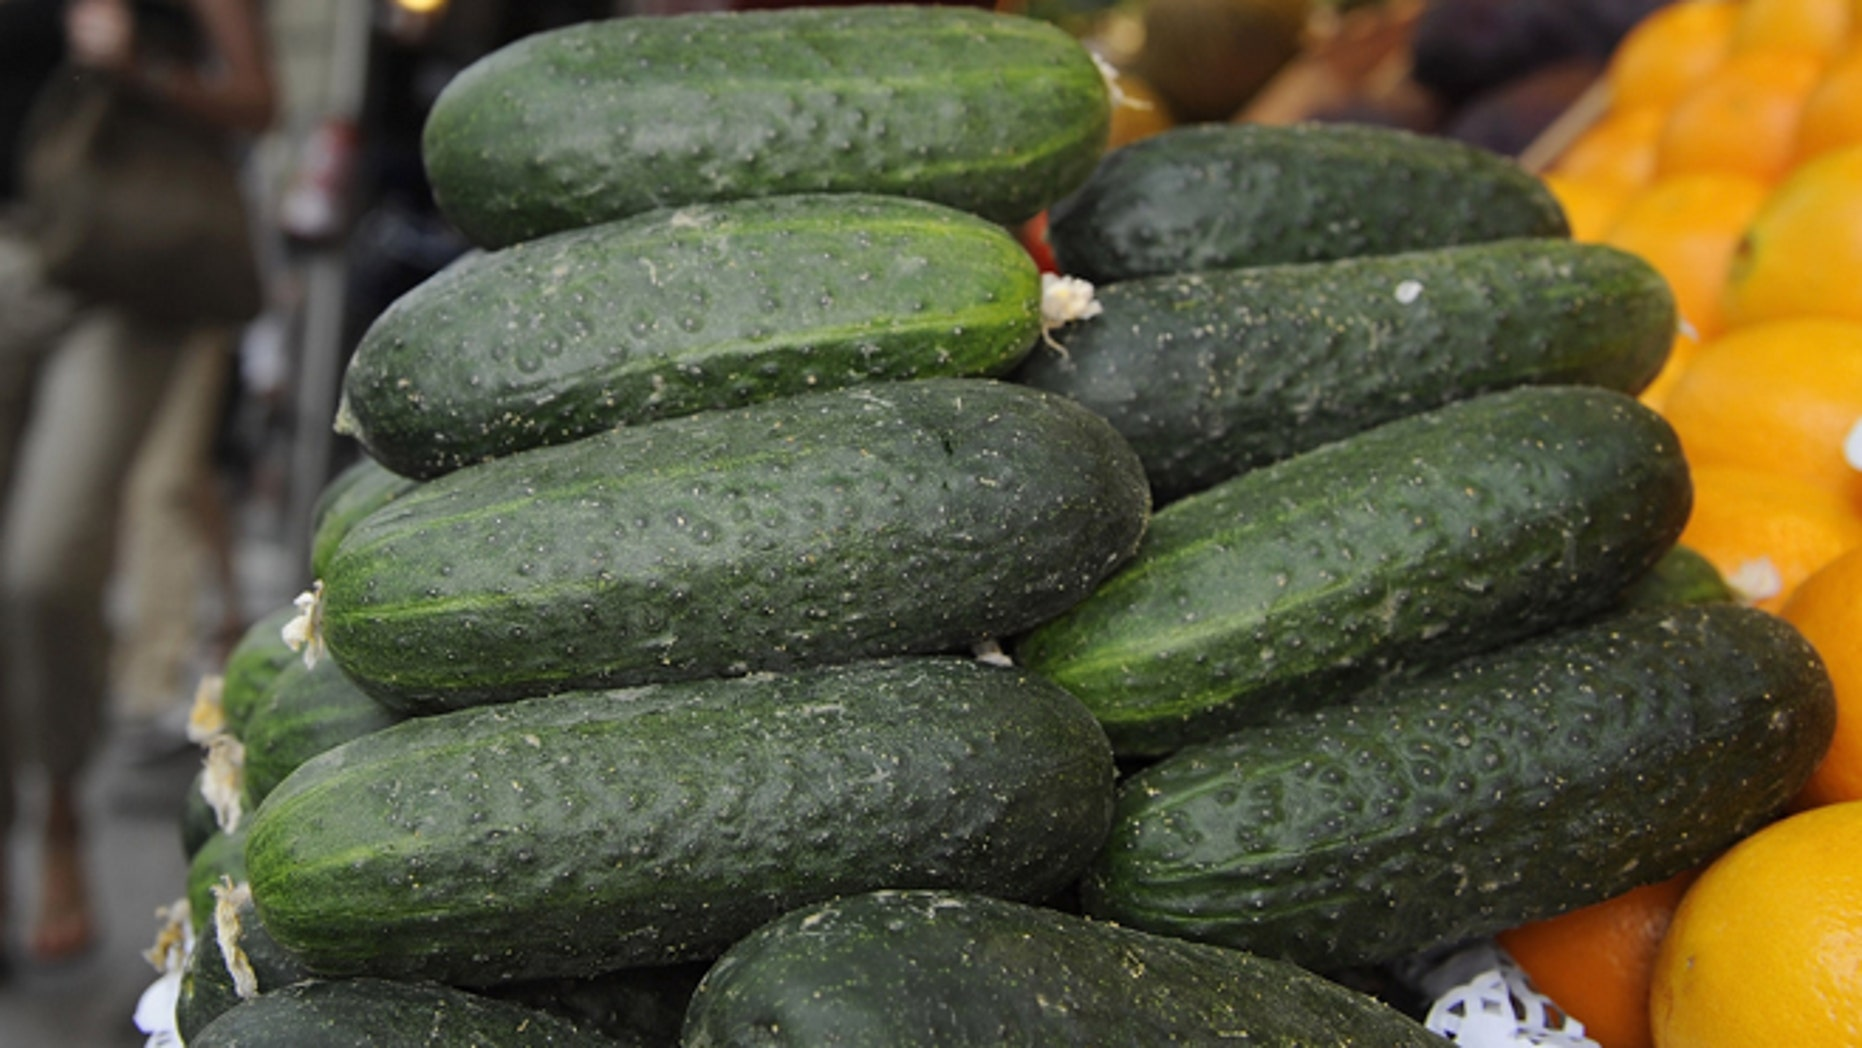 MADRID, SPAIN - JUNE 03: Cucumbers are for sale at San Miguel market on June 3, 2011 in Madrid, Spain. Spaniards continue to buy fresh fruit and vegetables despite the outbreak of E.coli bacteria, also known as EHEC, which is thought to have killed 16 people and left hundreds sick across Europe.  (Photo by Denis Doyle/Getty Images)